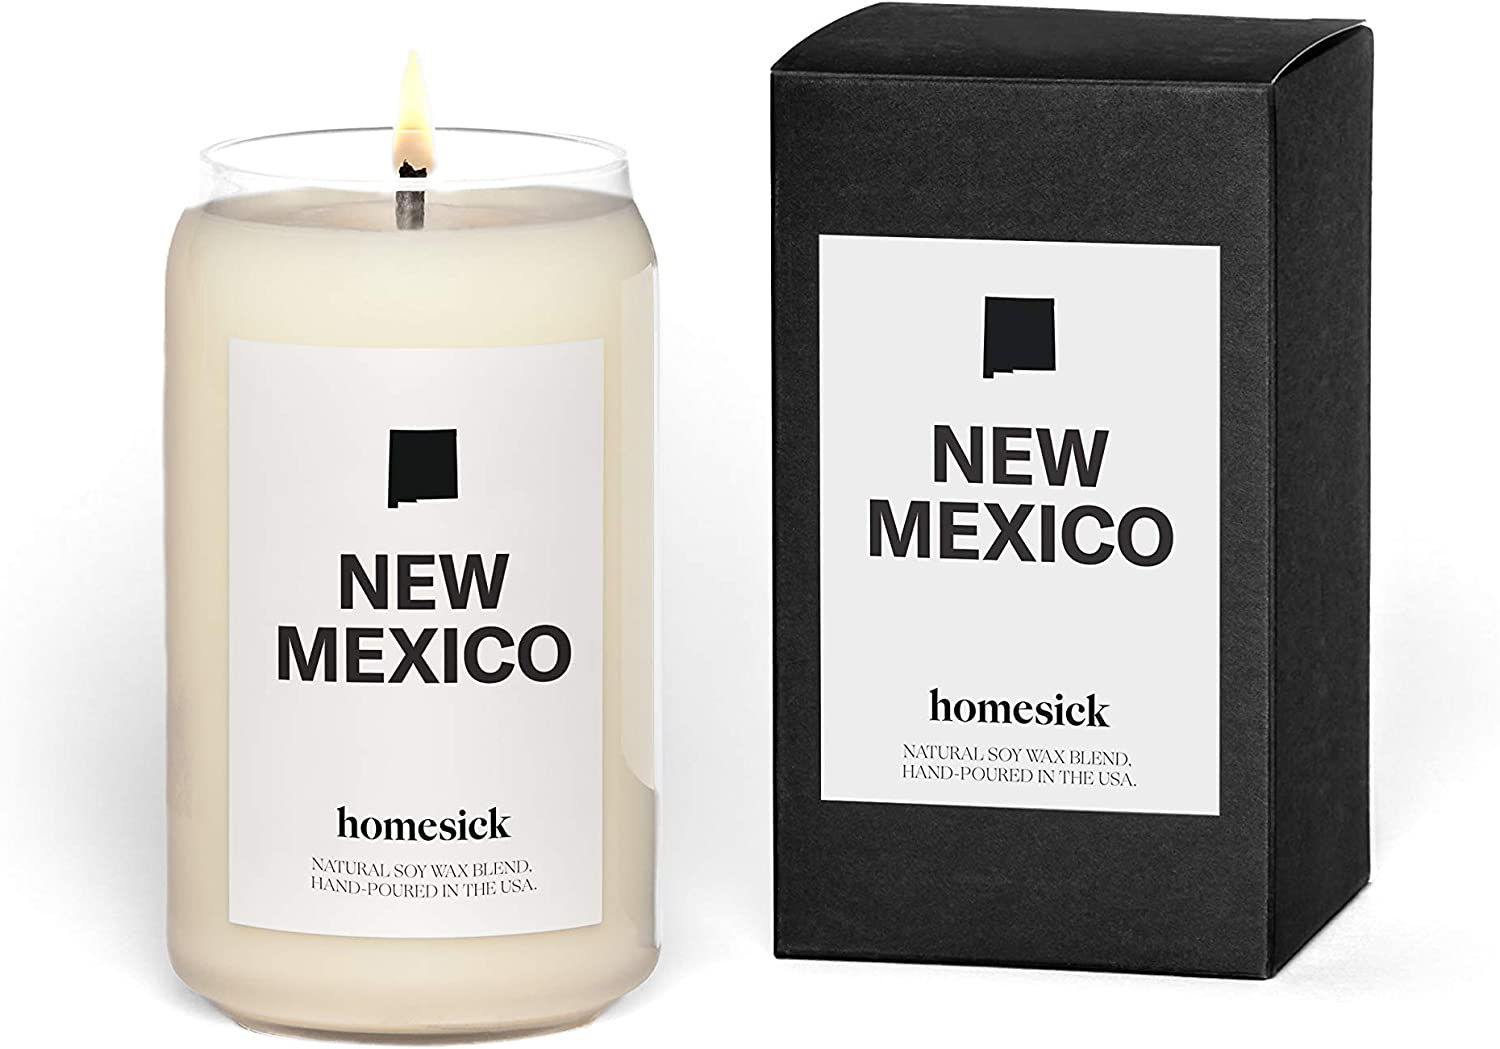 Homesick Scented Candle, New Mexico (2020 Version)